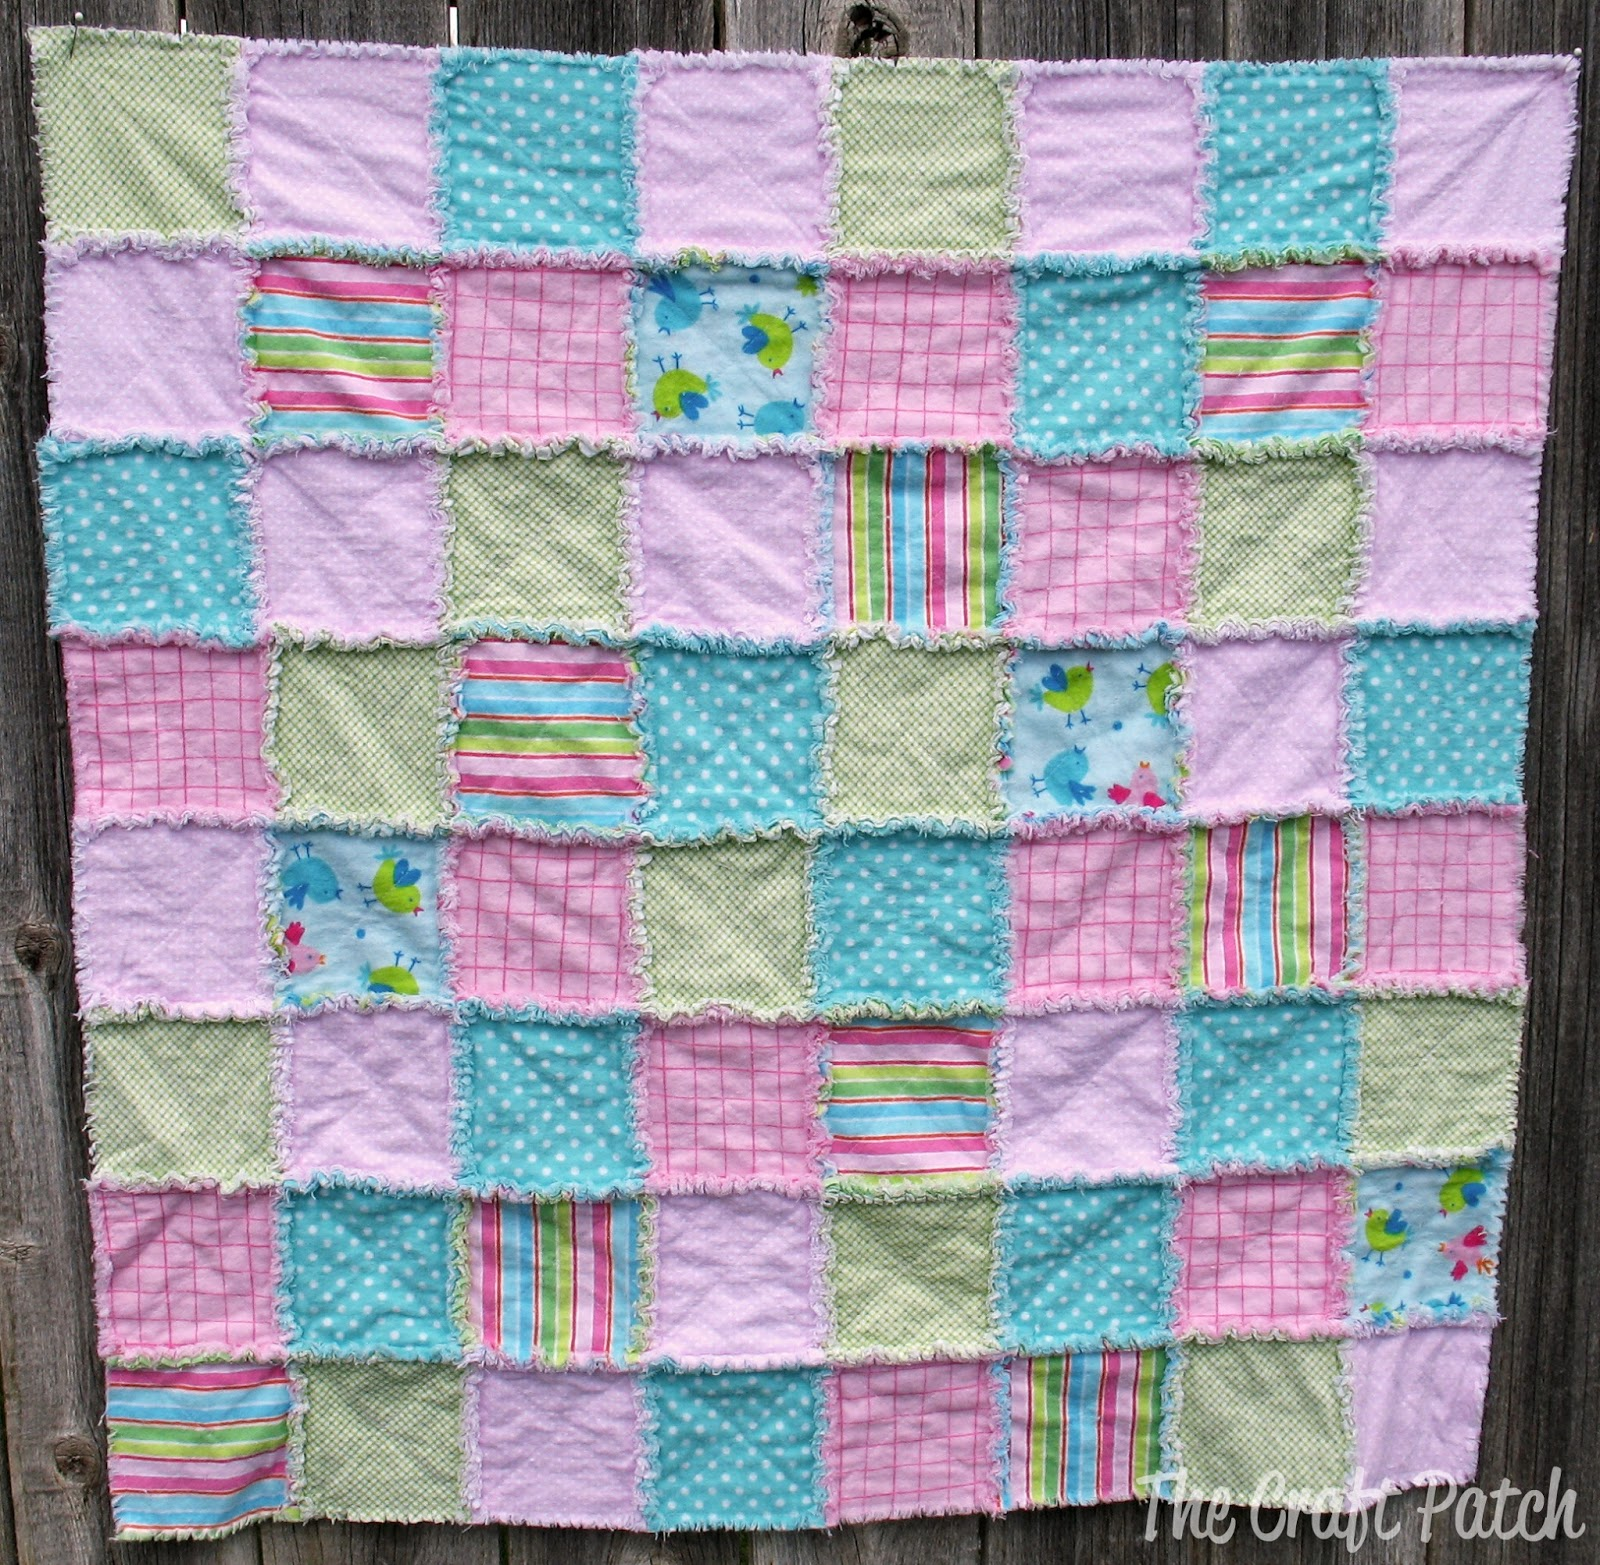 Making A Rag Quilt A Great Baby Gift Thecraftpatchblog Com